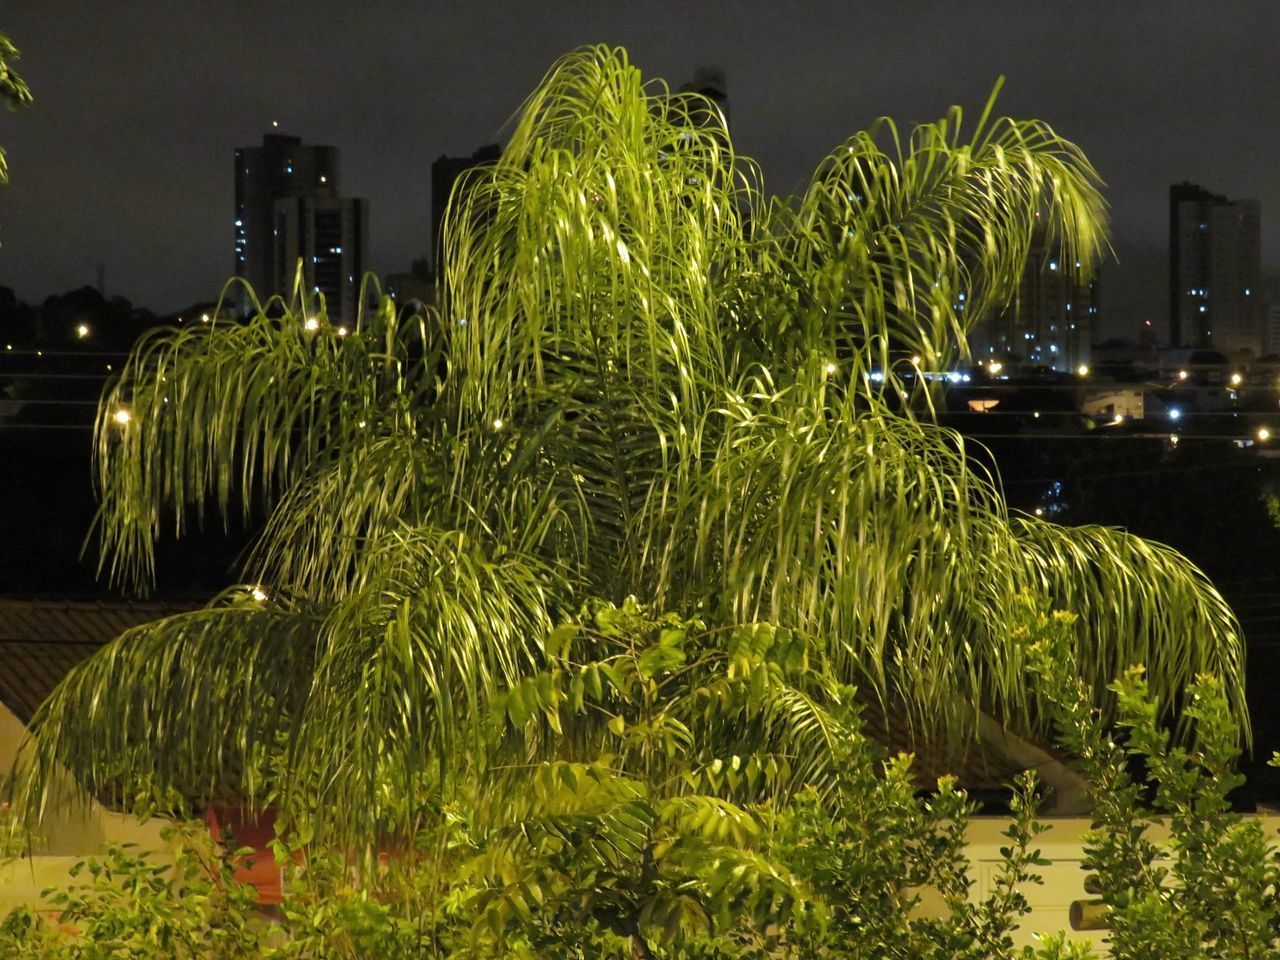 SCENIC VIEW OF TREES AT NIGHT